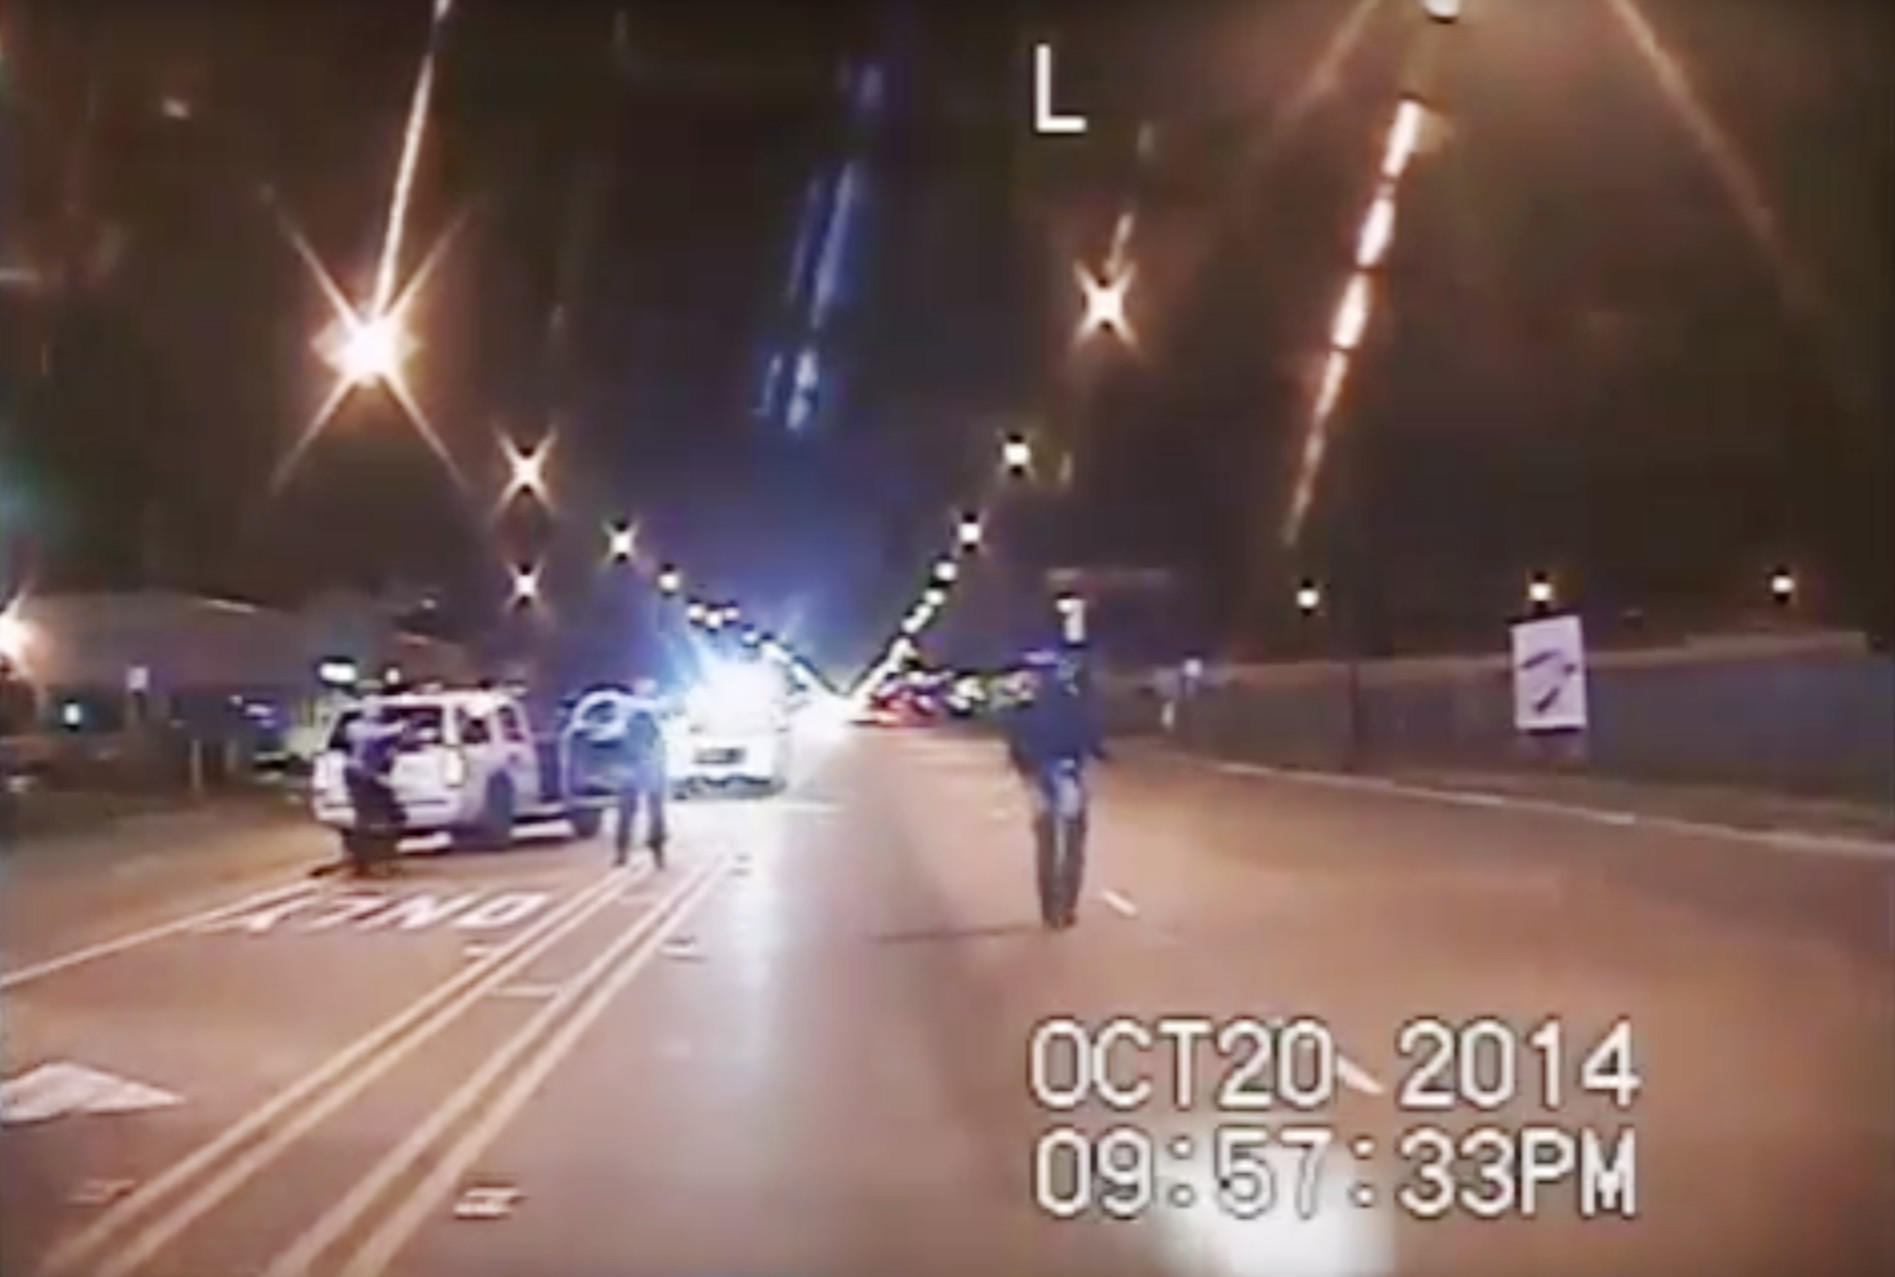 How the paths of Laquan McDonald and Jason Van Dyke crossed that fateful night | Chicago Tribune